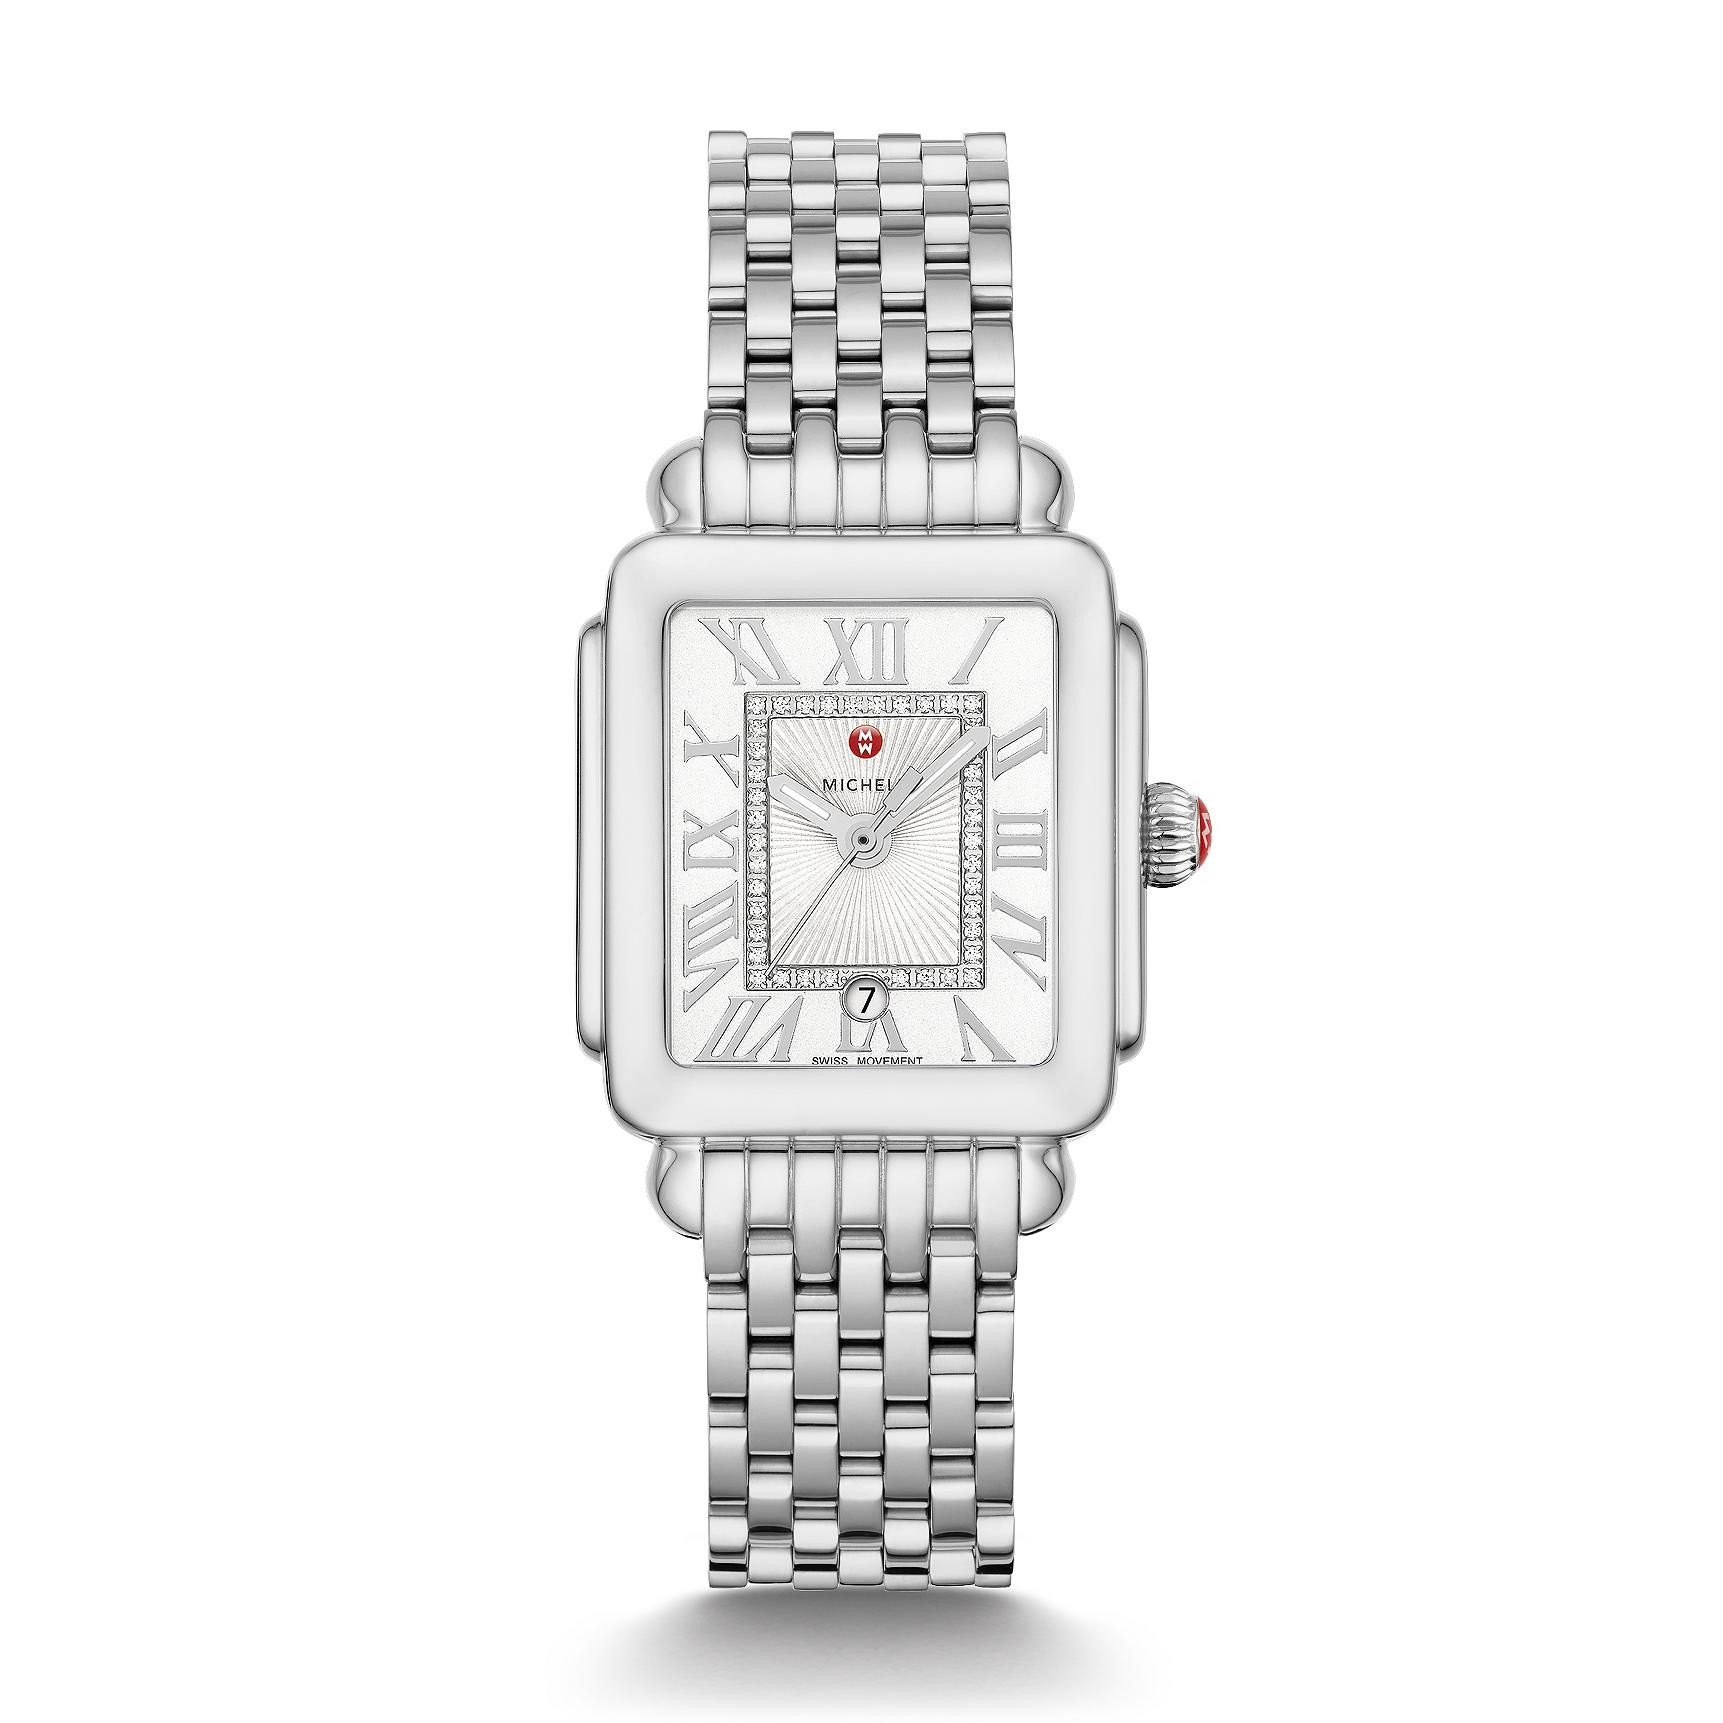 Michele Deco Madison Mid Diamond Dial Watch in Stainless Steel  full view